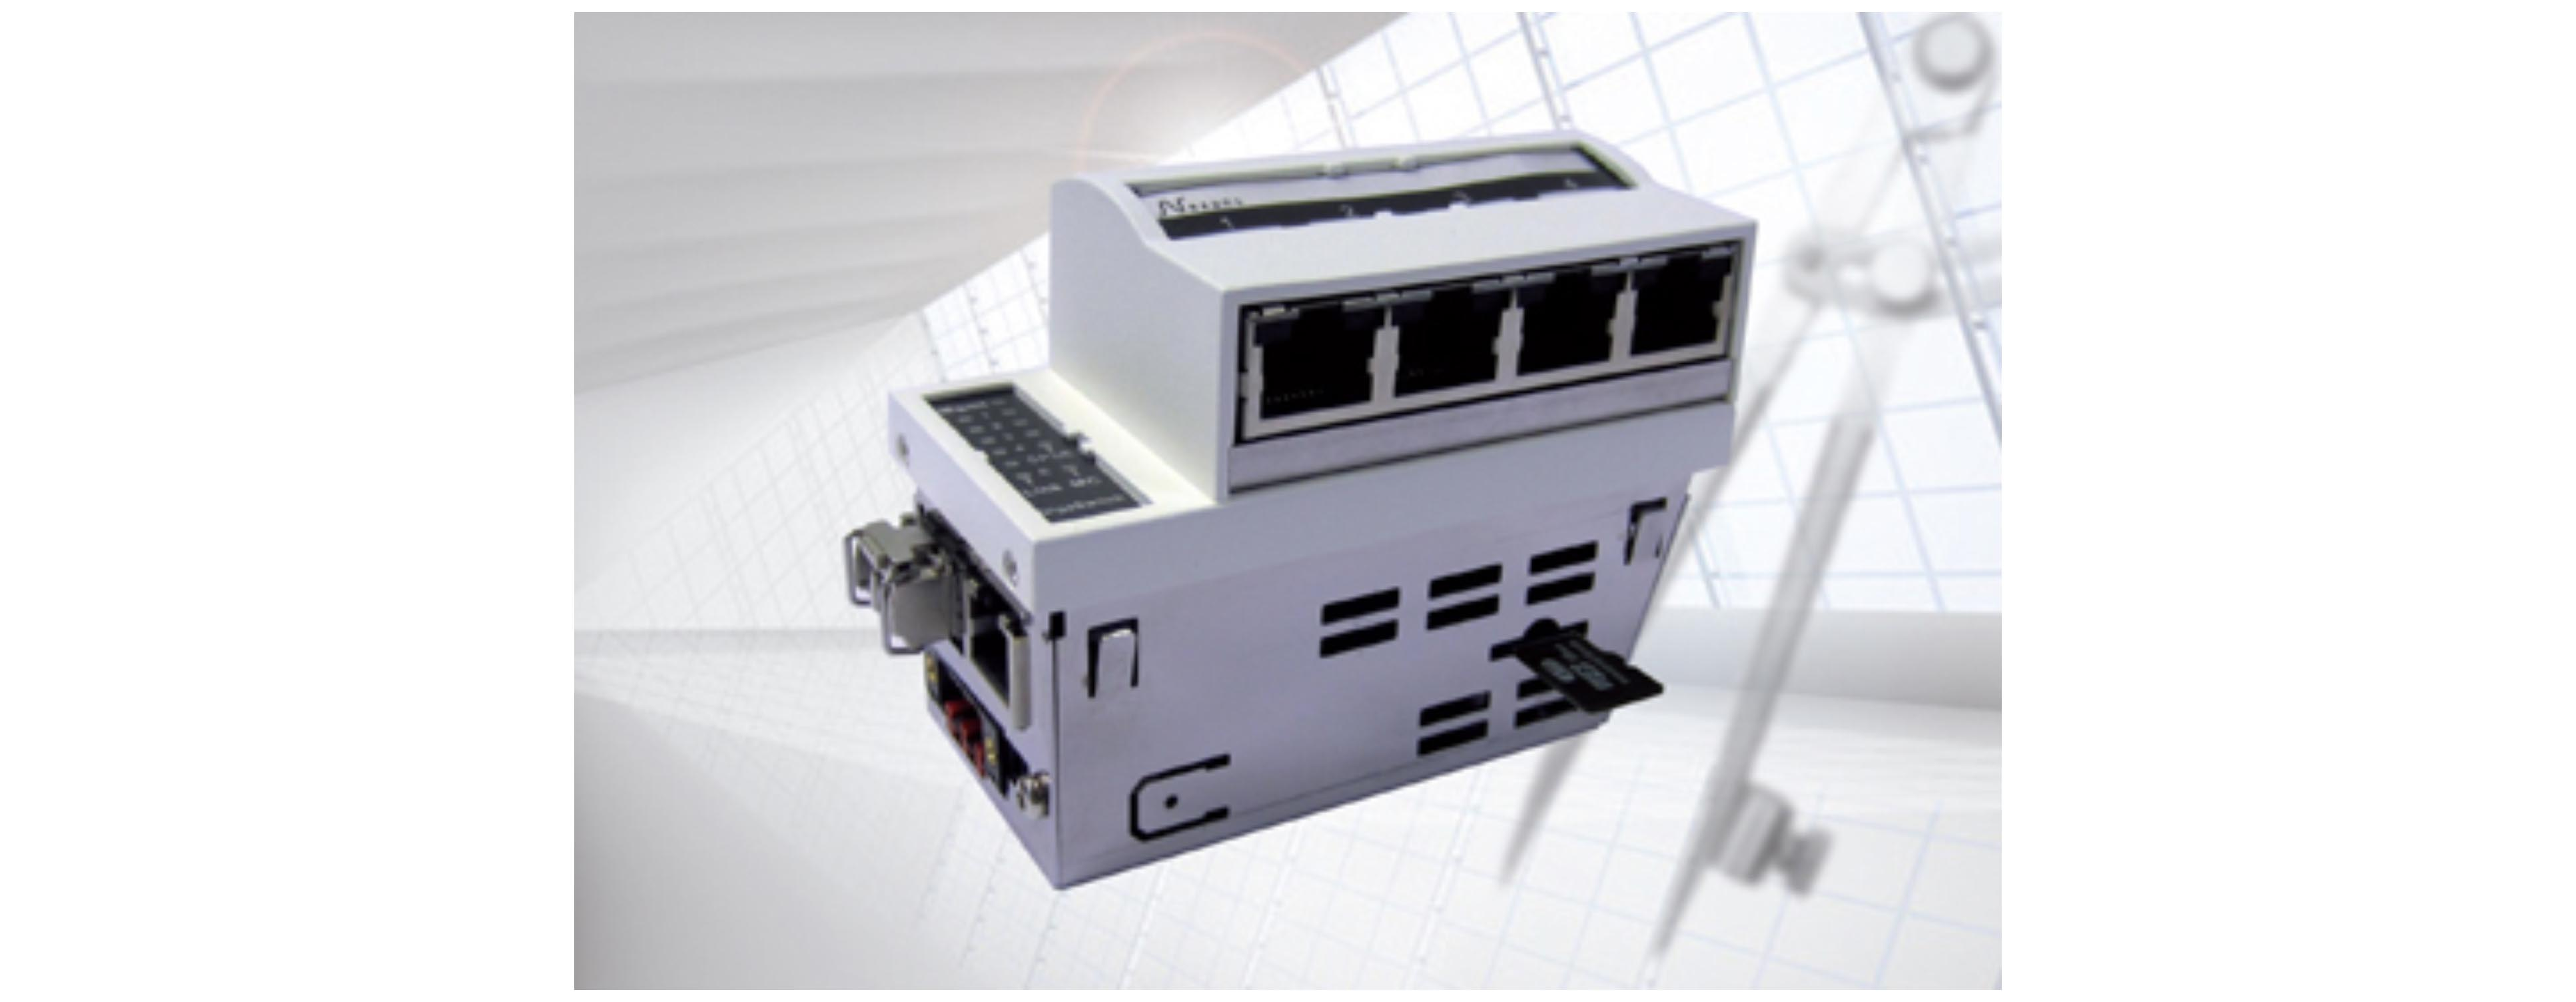 FTTO - Fiber to the Office